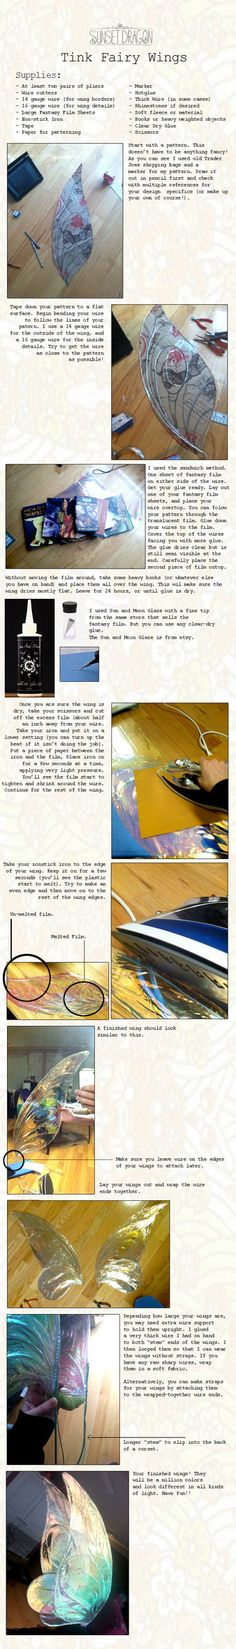 Fantasy Film Wing Tutorial by ~Flying-Fox on deviantART | THIS IS FREAKING AMAZING. I MUST MAKE THESE